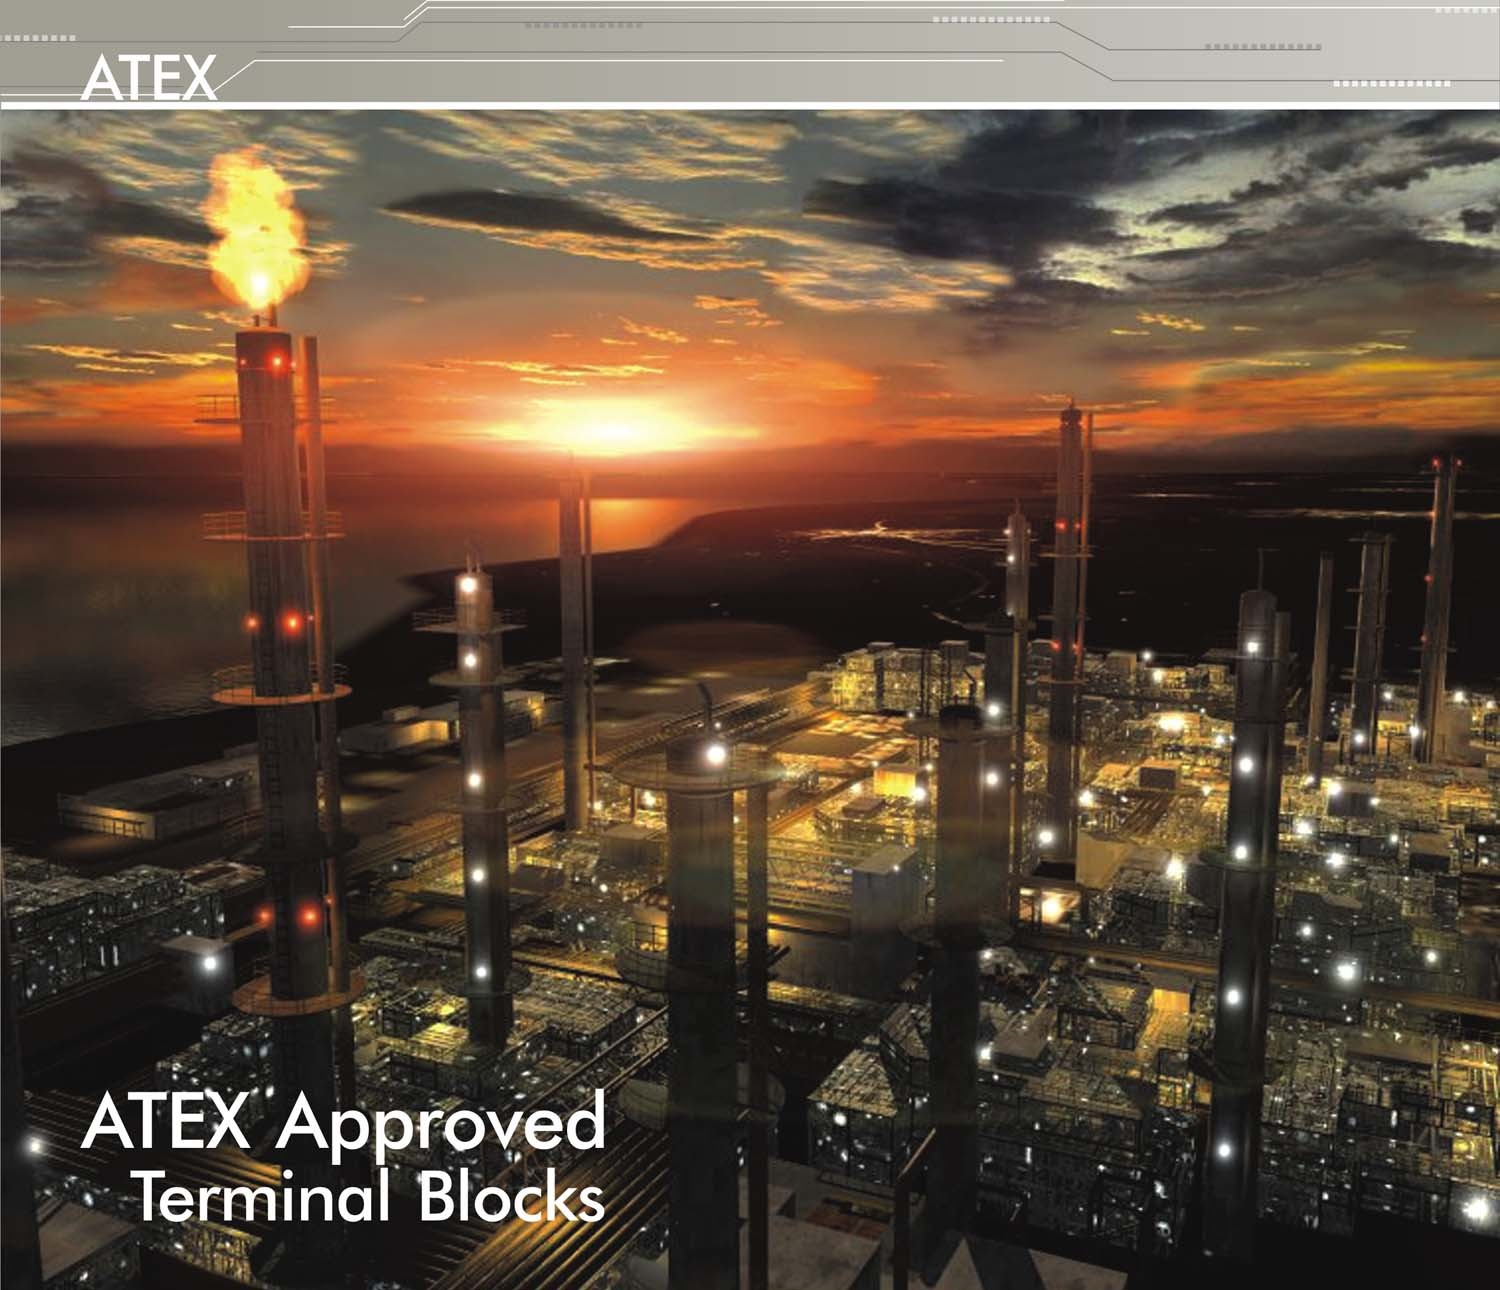 ATEX-IECEx Installation Instruction